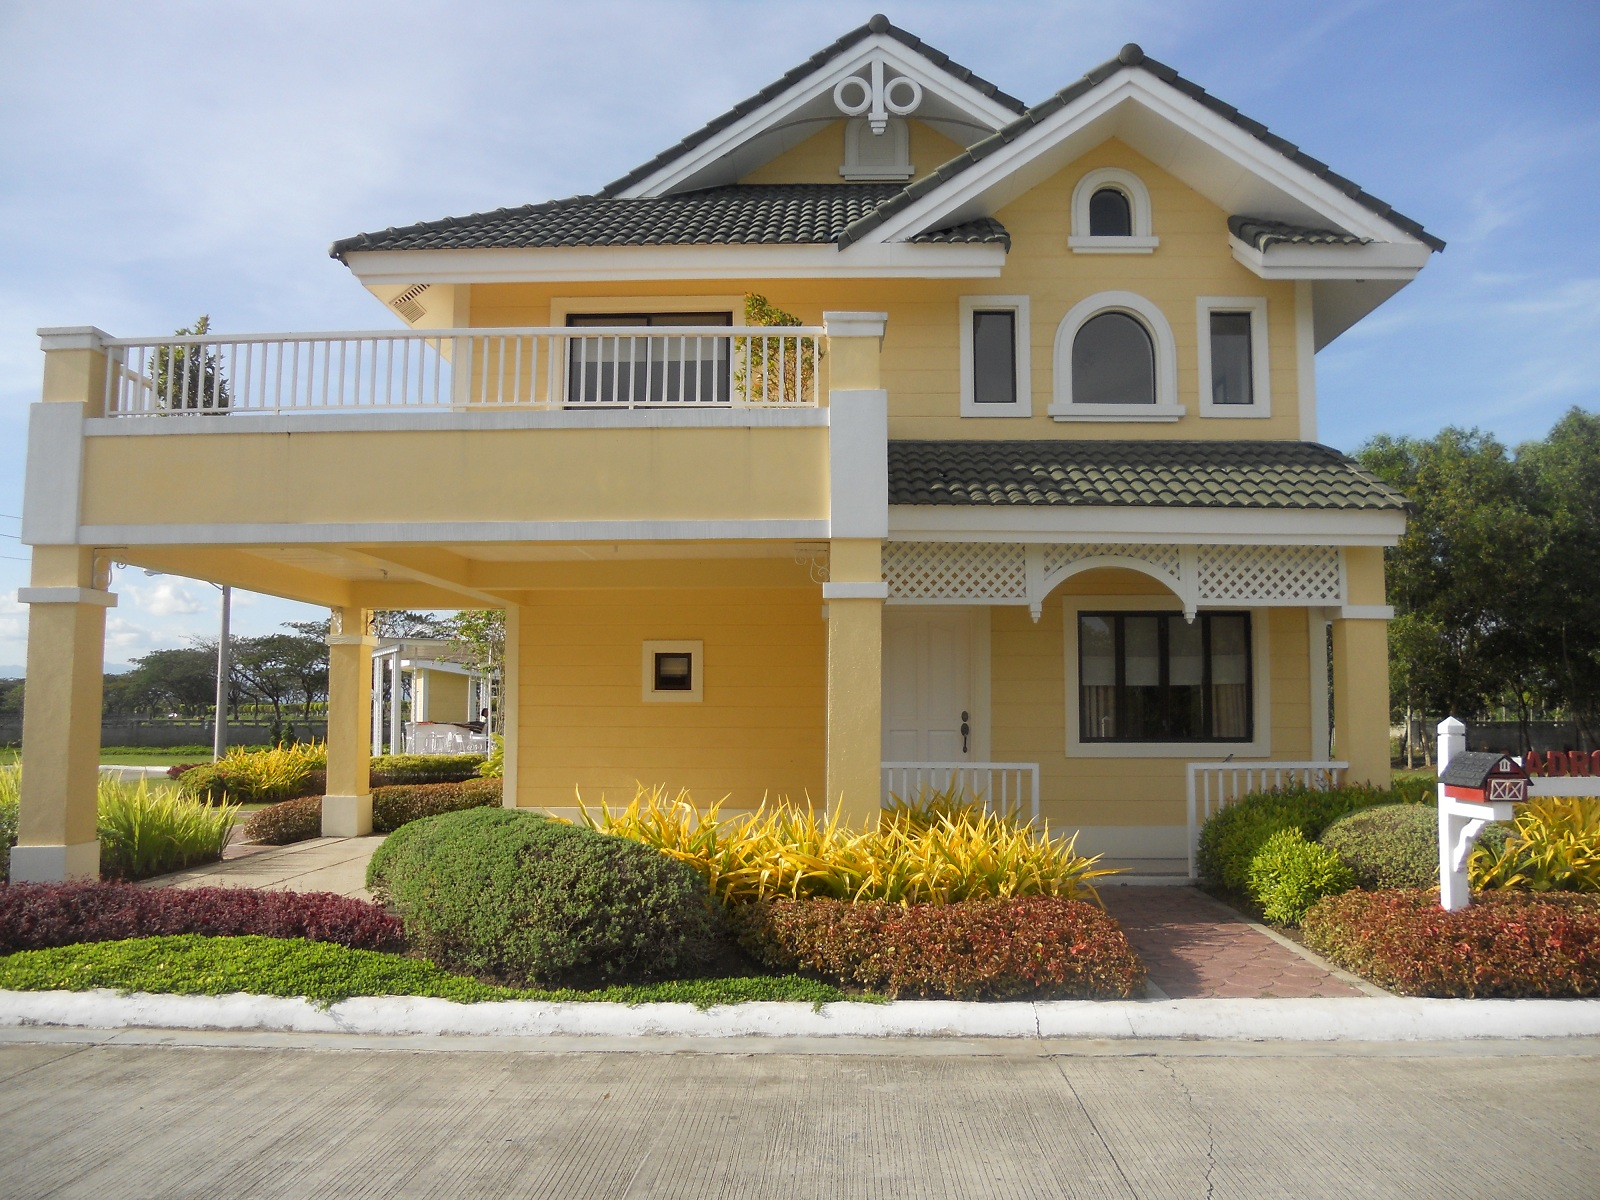 Lladro model house of savannah crest iloilo by camella for Model house design